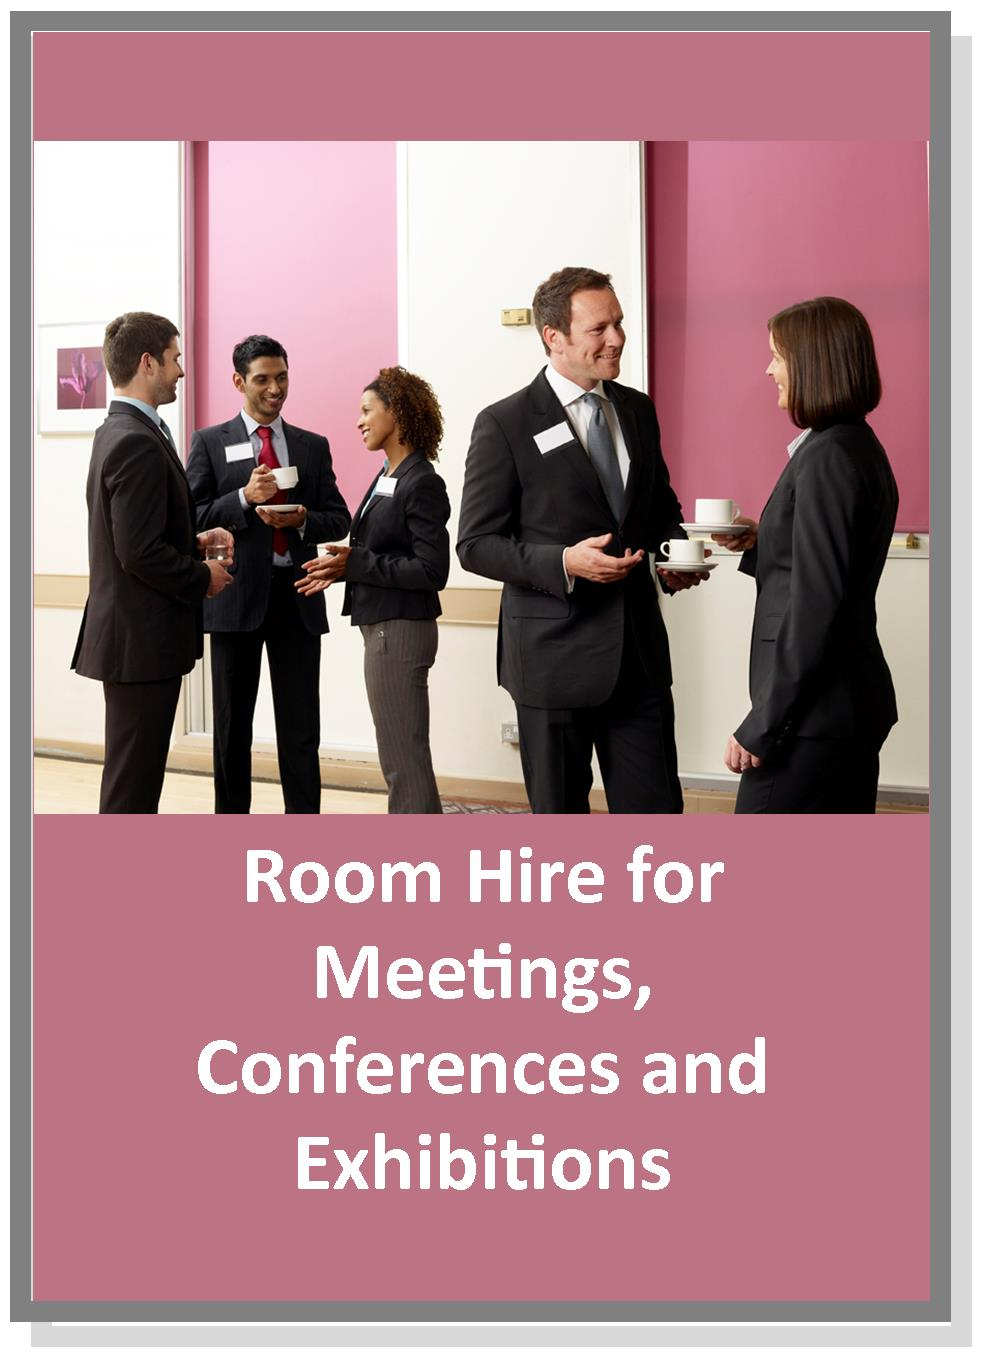 Meeting, conference, exhibitions, venue